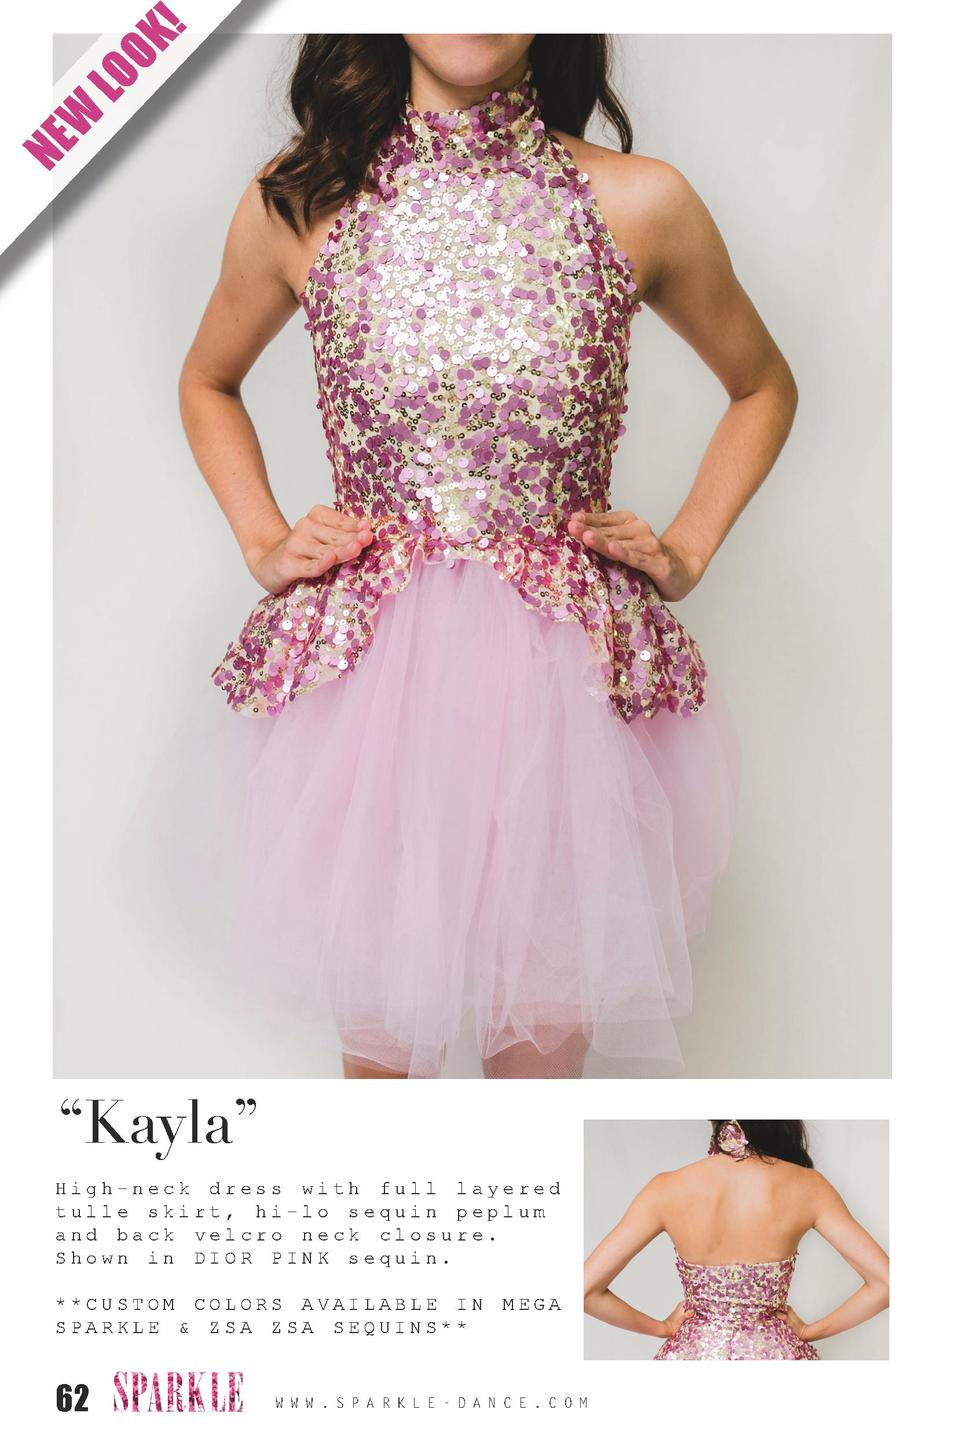 K  LO O W NE     Kayla    High-neck dress with full layered tulle skirt, hi-lo sequin peplum and back velcro neck closure....